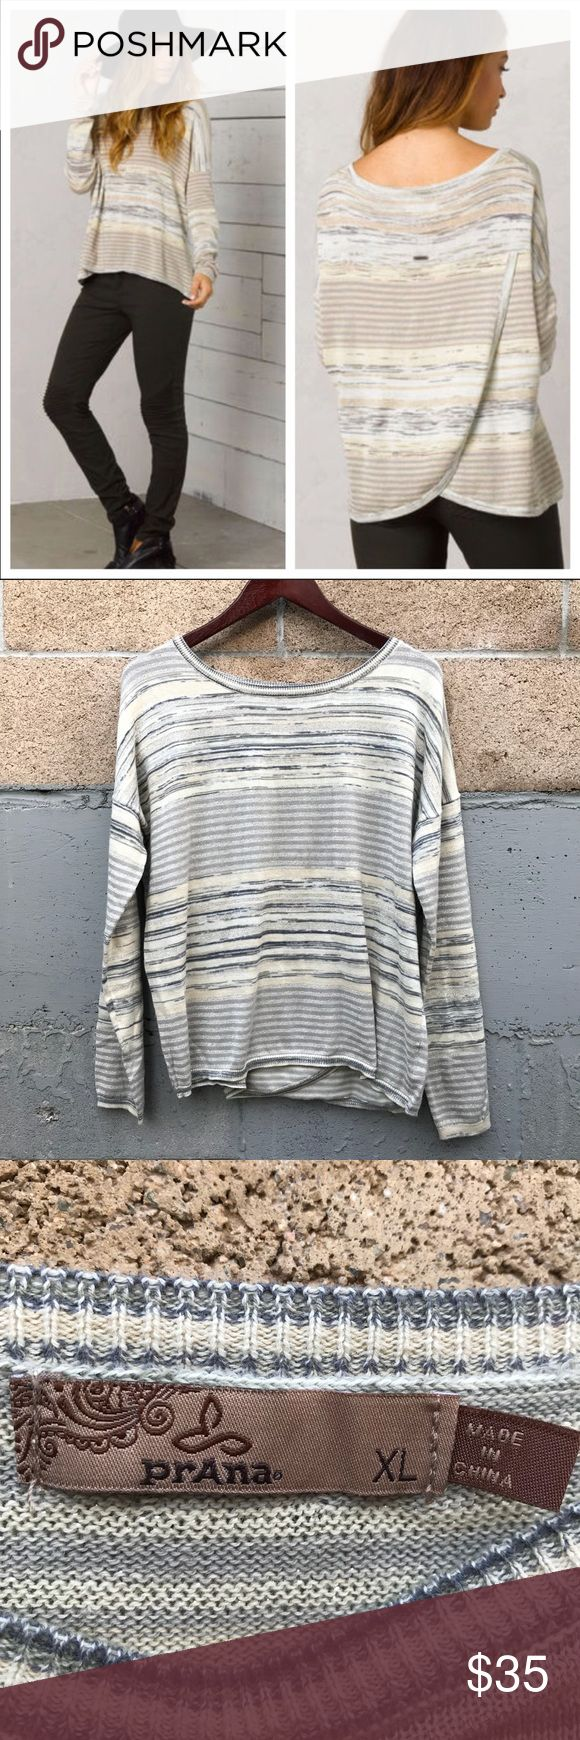 PrAna Adelaide Metallic Cross Back Sweater XL PrAna Adelaide long sleeve top, size XL. Heathered striped gray and beige in color with metallic thread woven in. Care and composition tag has been cut out but according to the manufacturer this is: 94% cotton, 4% polyester, 2% metallic. Lightweight material. Great neutral top with a twist. Cute cross back detail. EUC - no visible flaws.  shoulder to shoulder: 27 pit to pit: 25 length: 23 Prana Tops